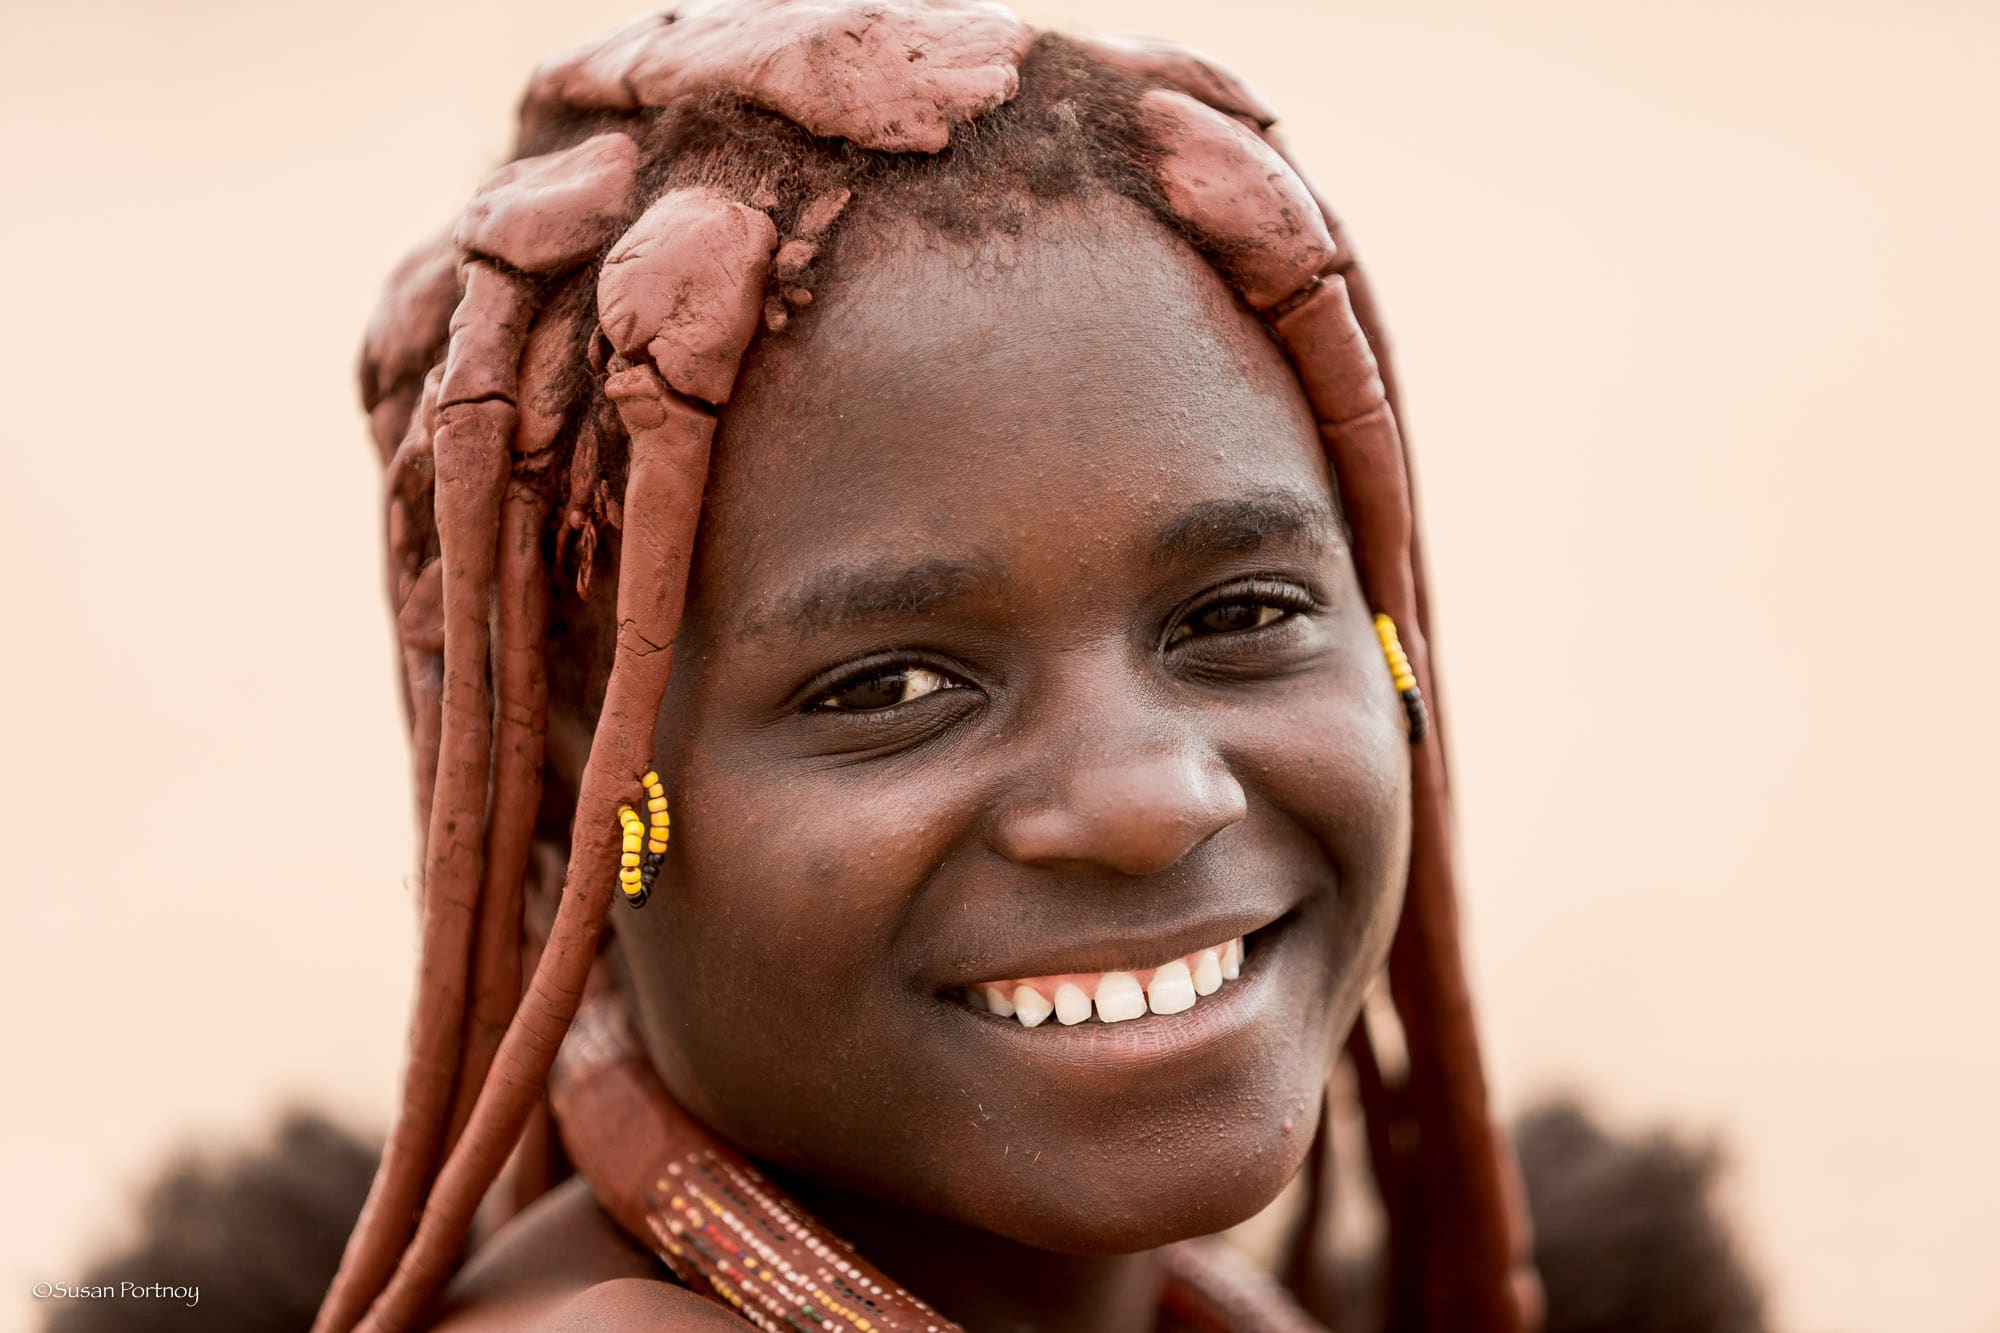 Young Himba girl in Namibia